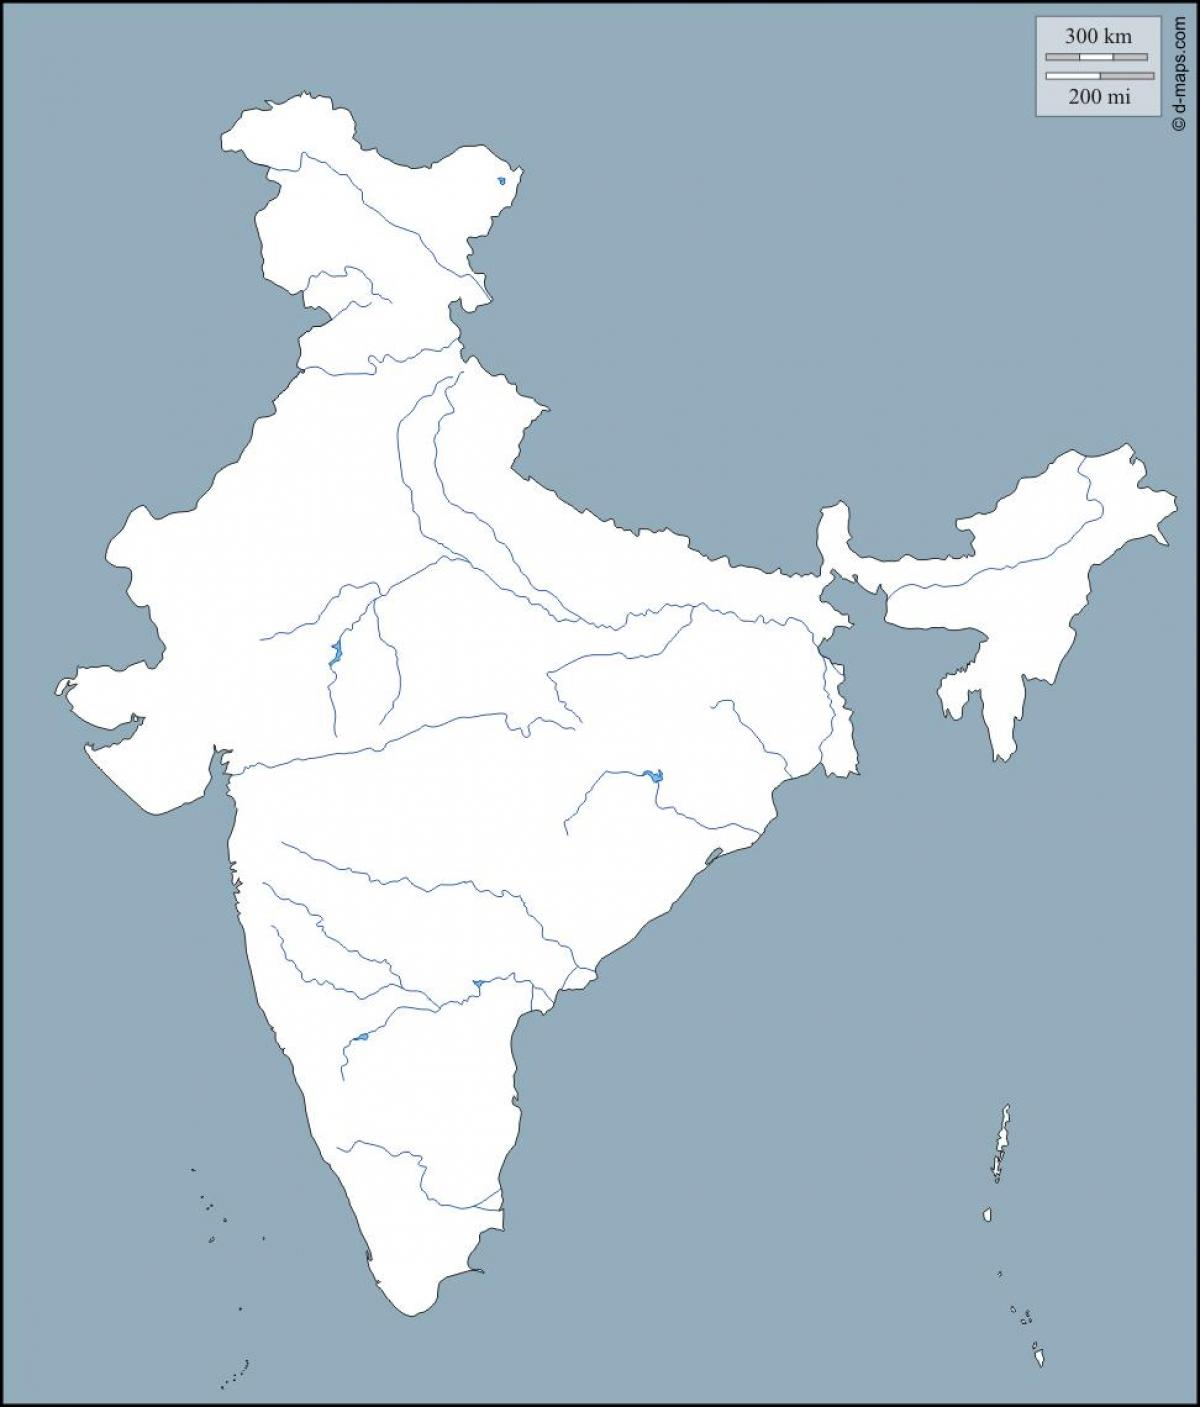 Blank River Map Of India India River Map Blank Southern Asia Asia